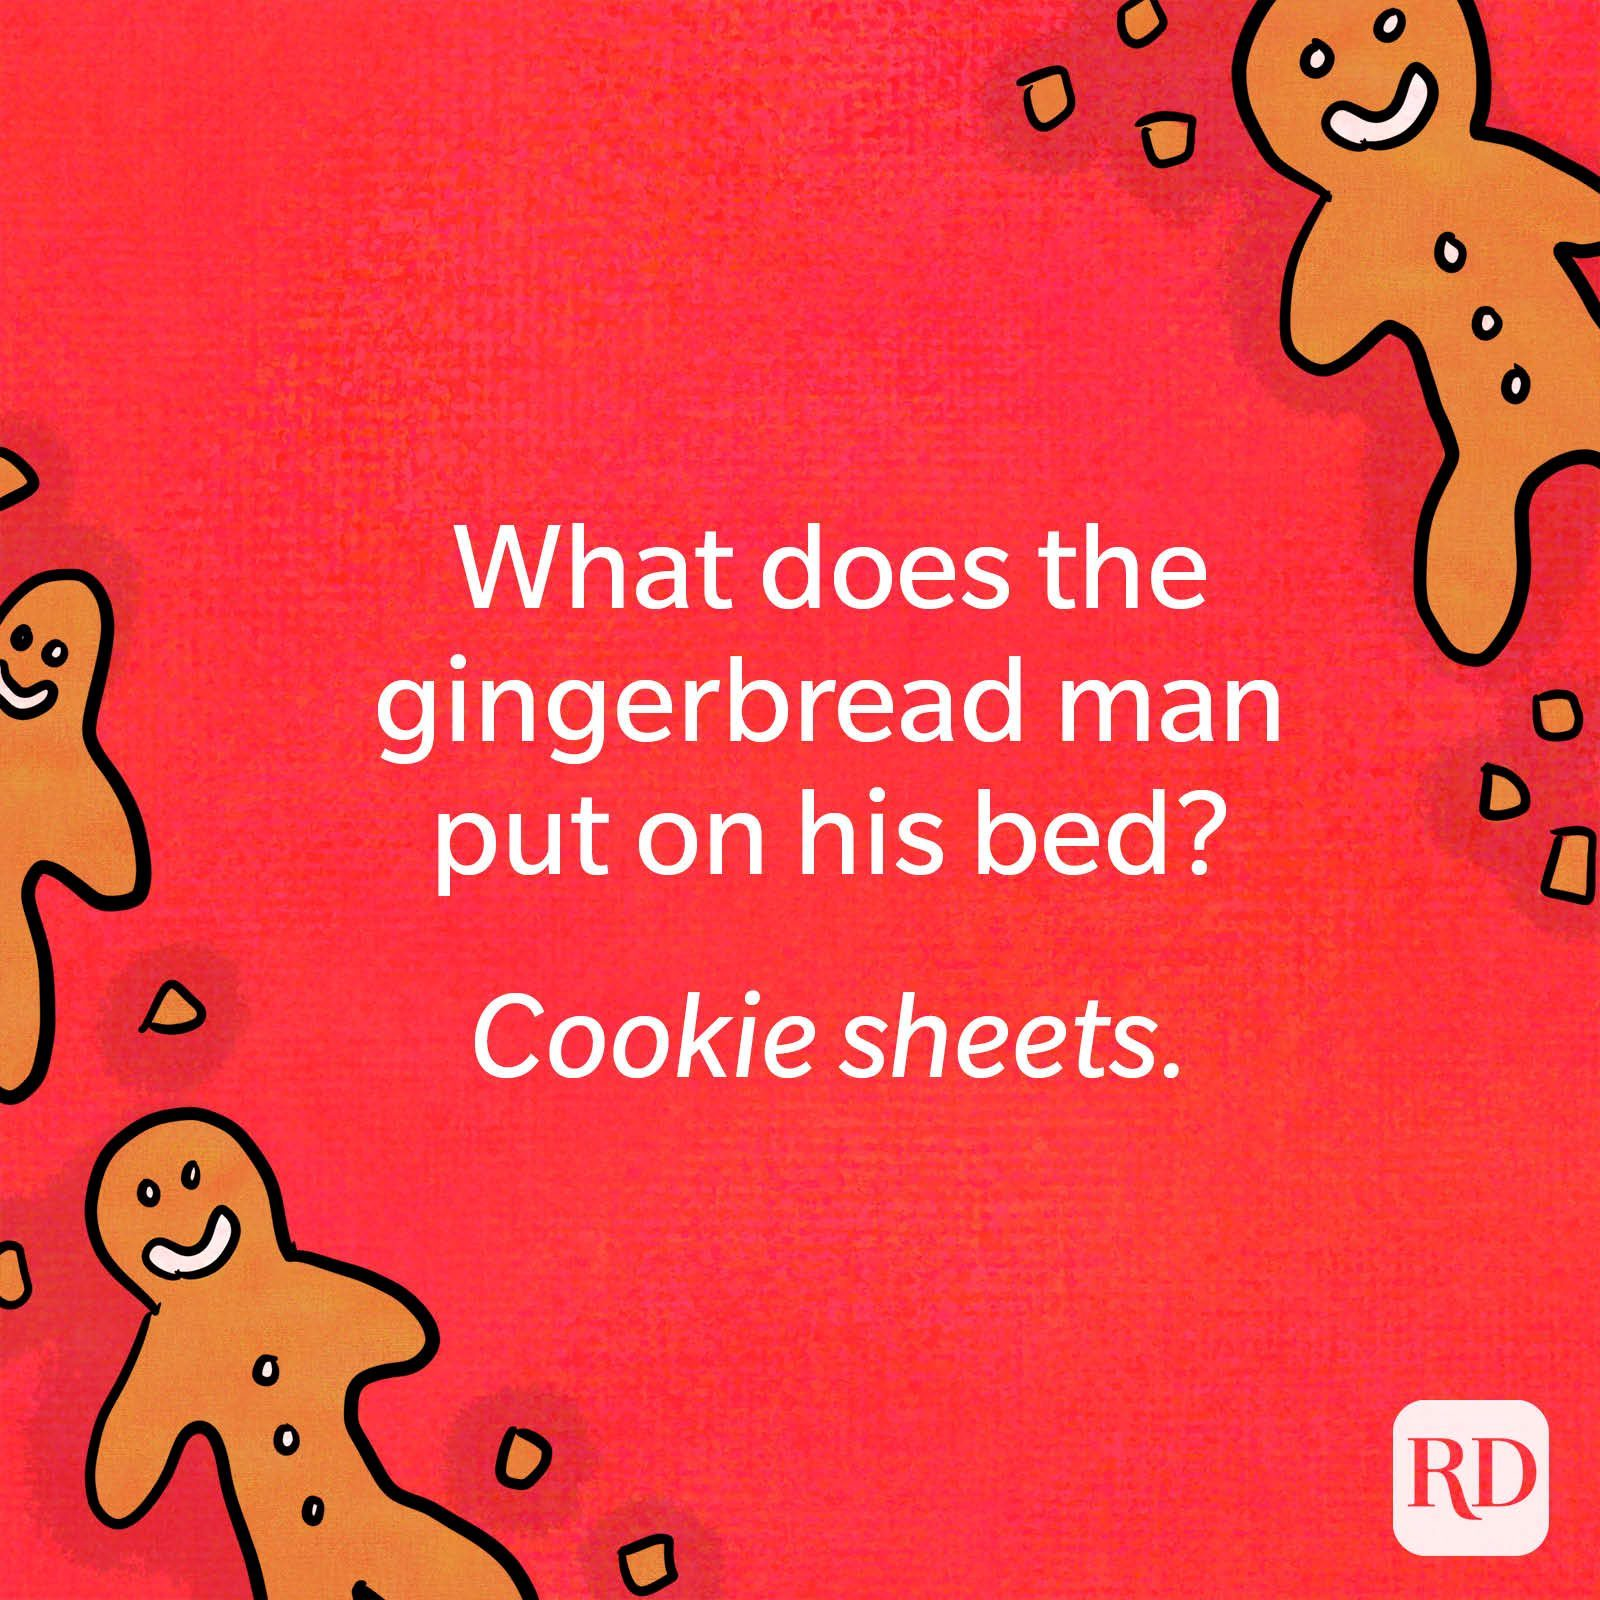 What does the gingerbread man put on his bed? Cookie sheets.